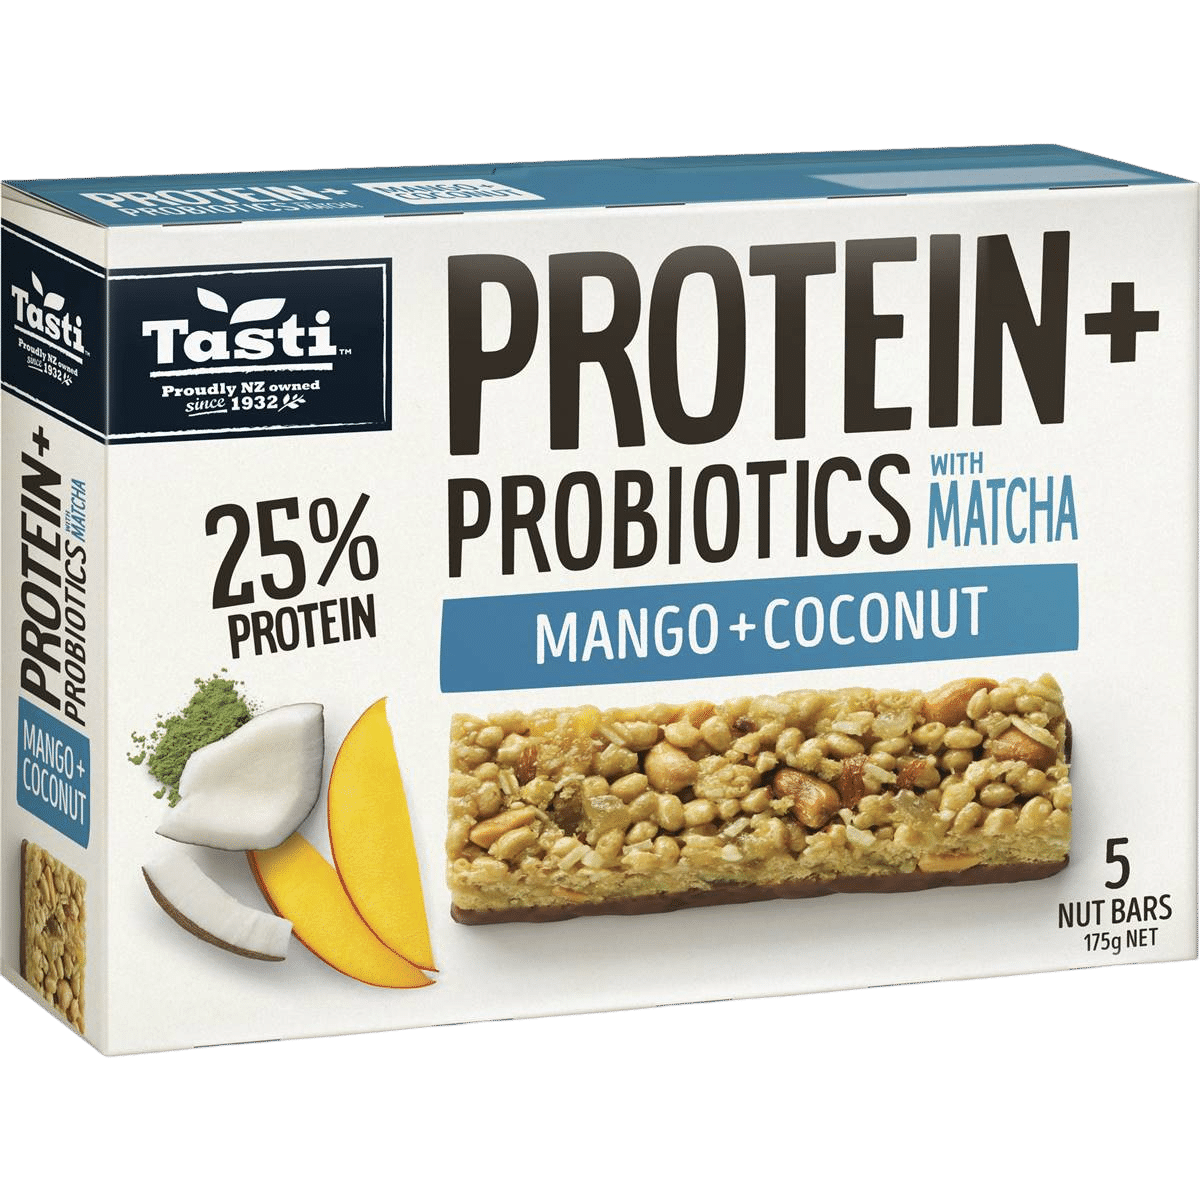 Looking for a portable snack with probiotics?